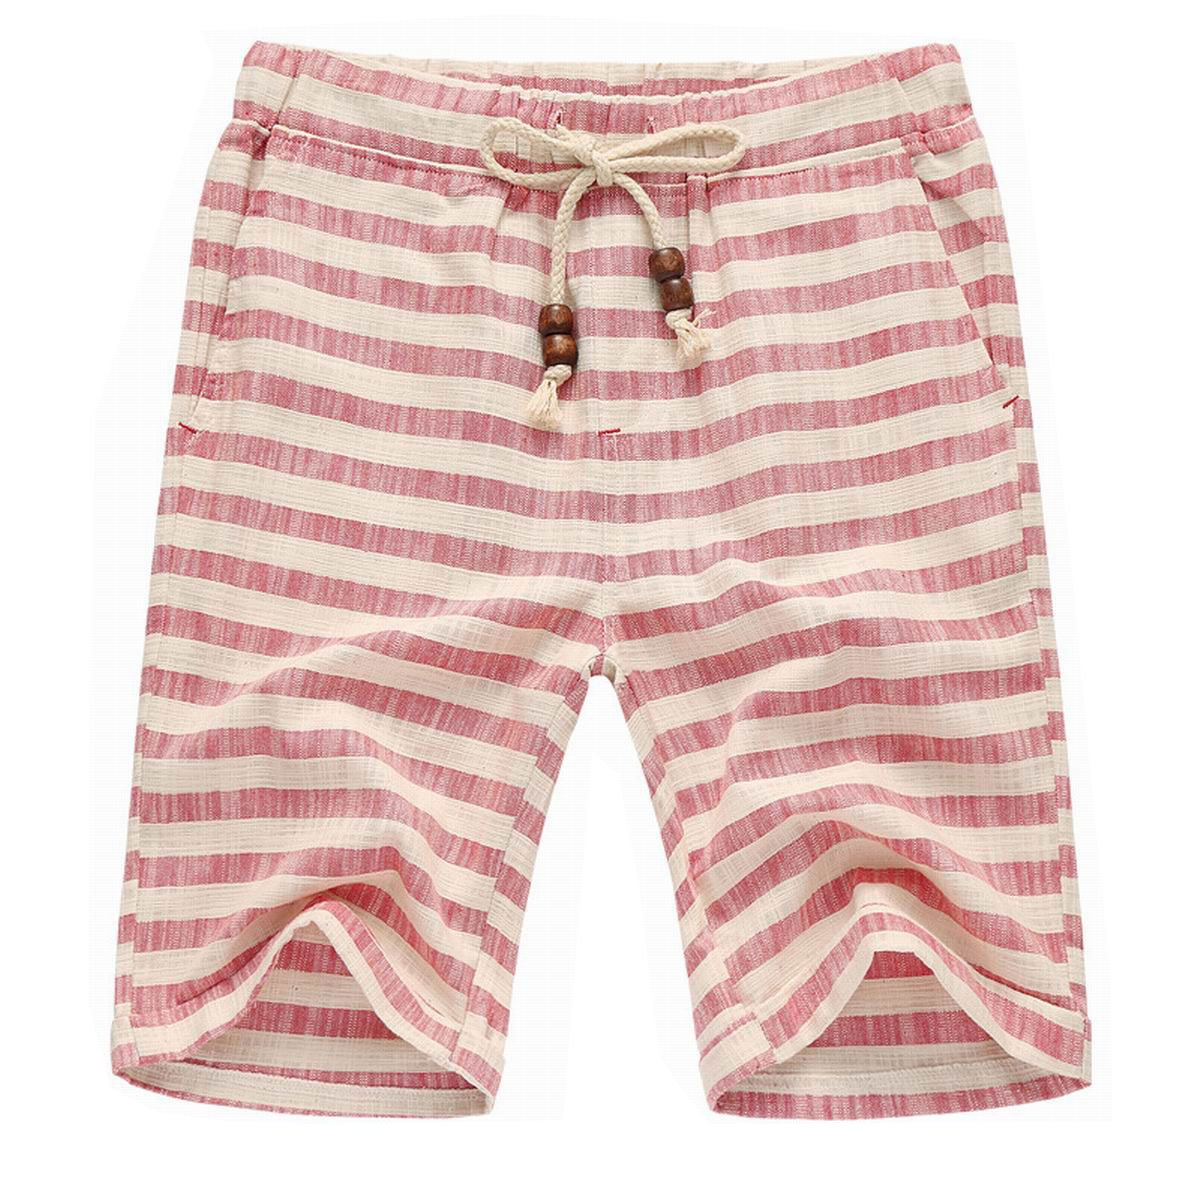 Men's Summer Casual Linen Drawstring Striped Beach Shorts